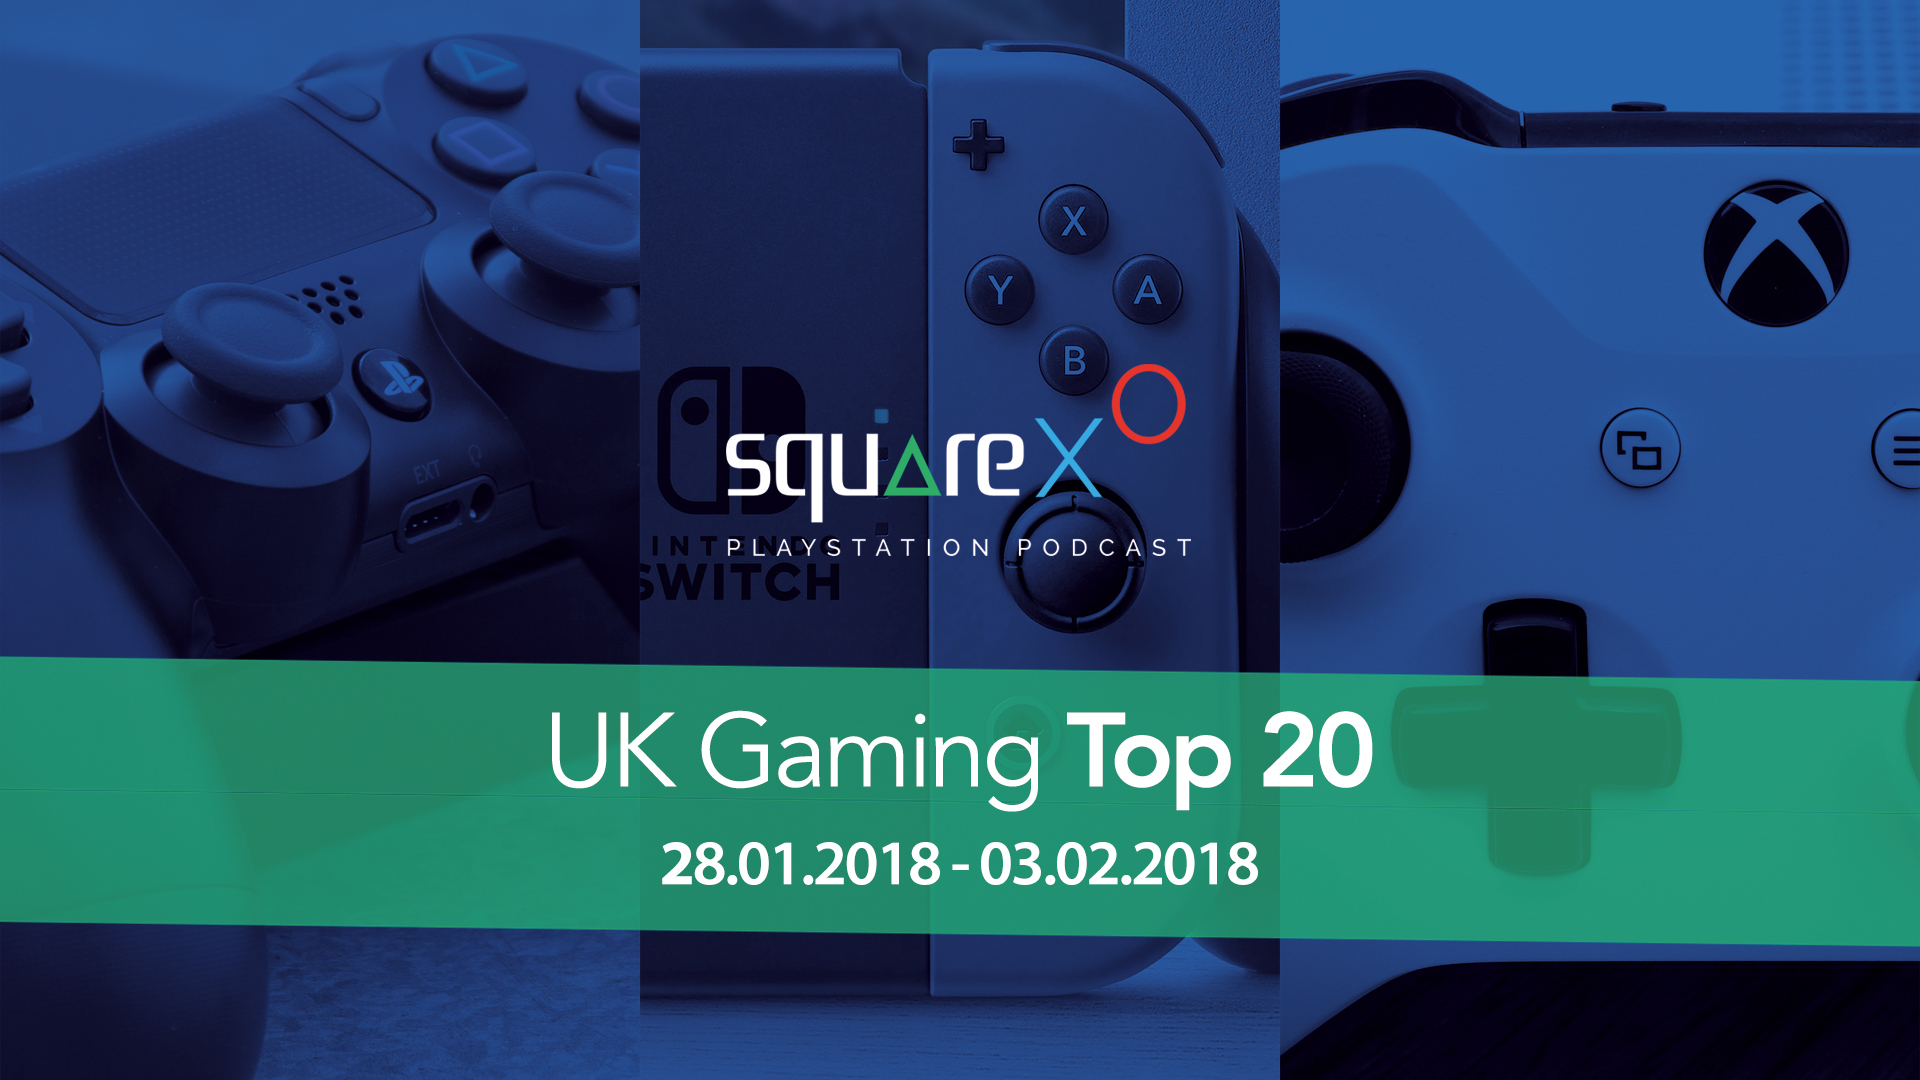 UK Weekly Top 20 Games for 28/01/18 – 03/02/18